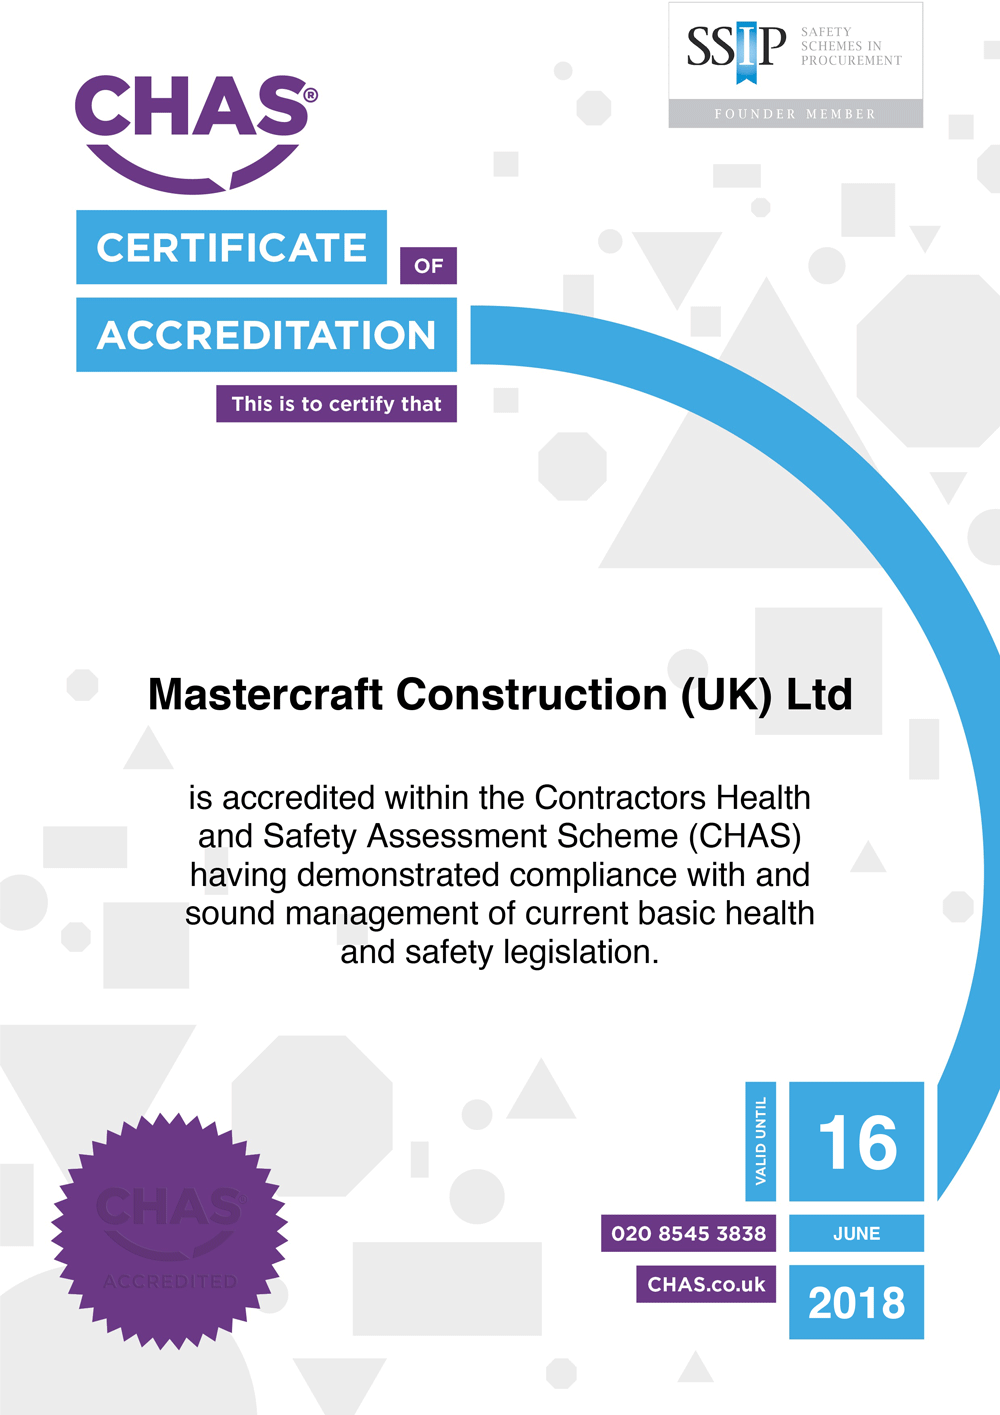 Cover image for CHAS Certificate 2019